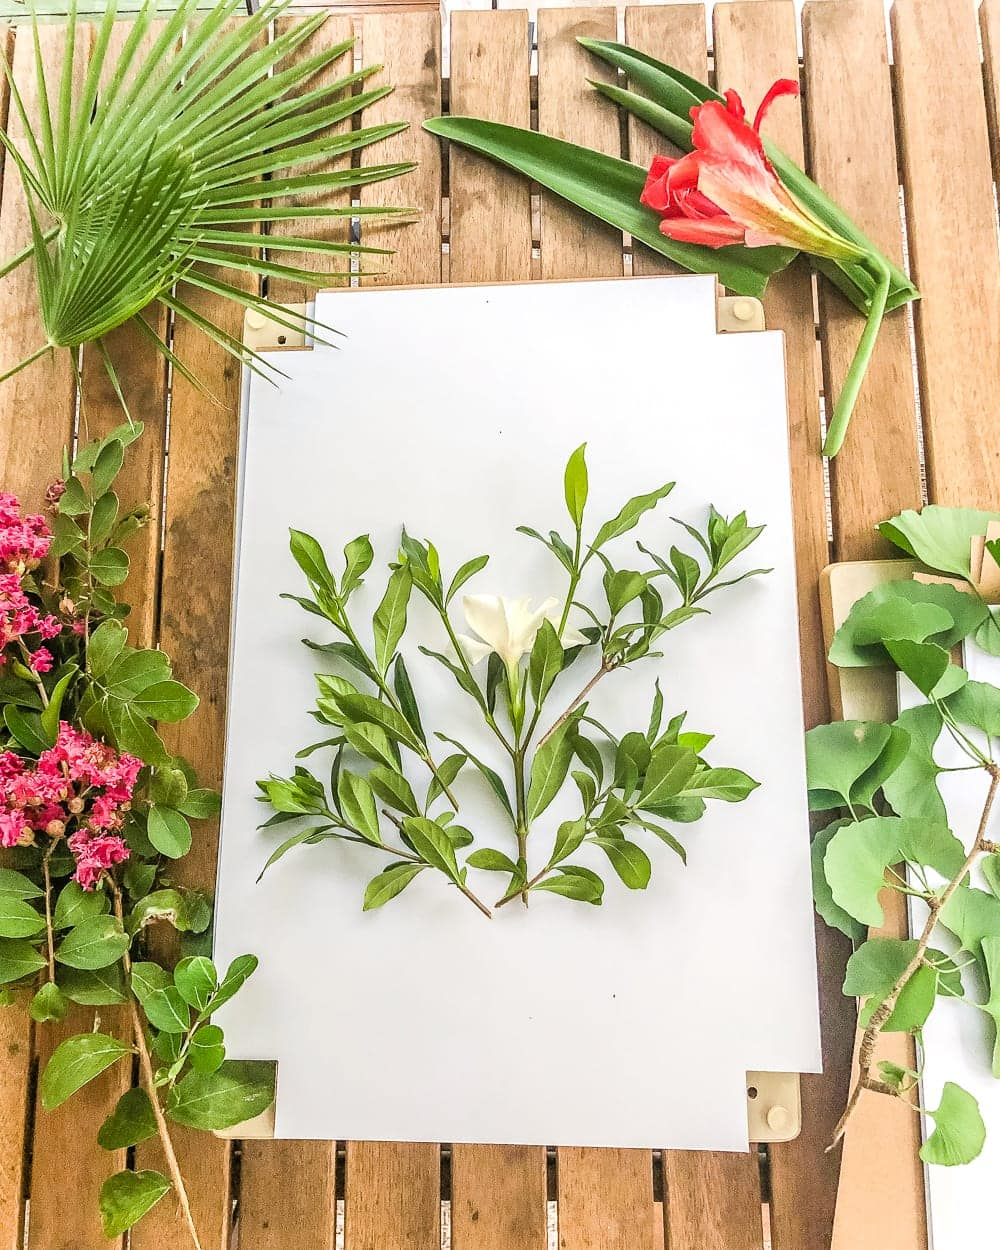 DIY Pressed Flower Art | How to press flowers and leaves from your own backyard to frame as inexpensive, vintage-inspired wall decor.